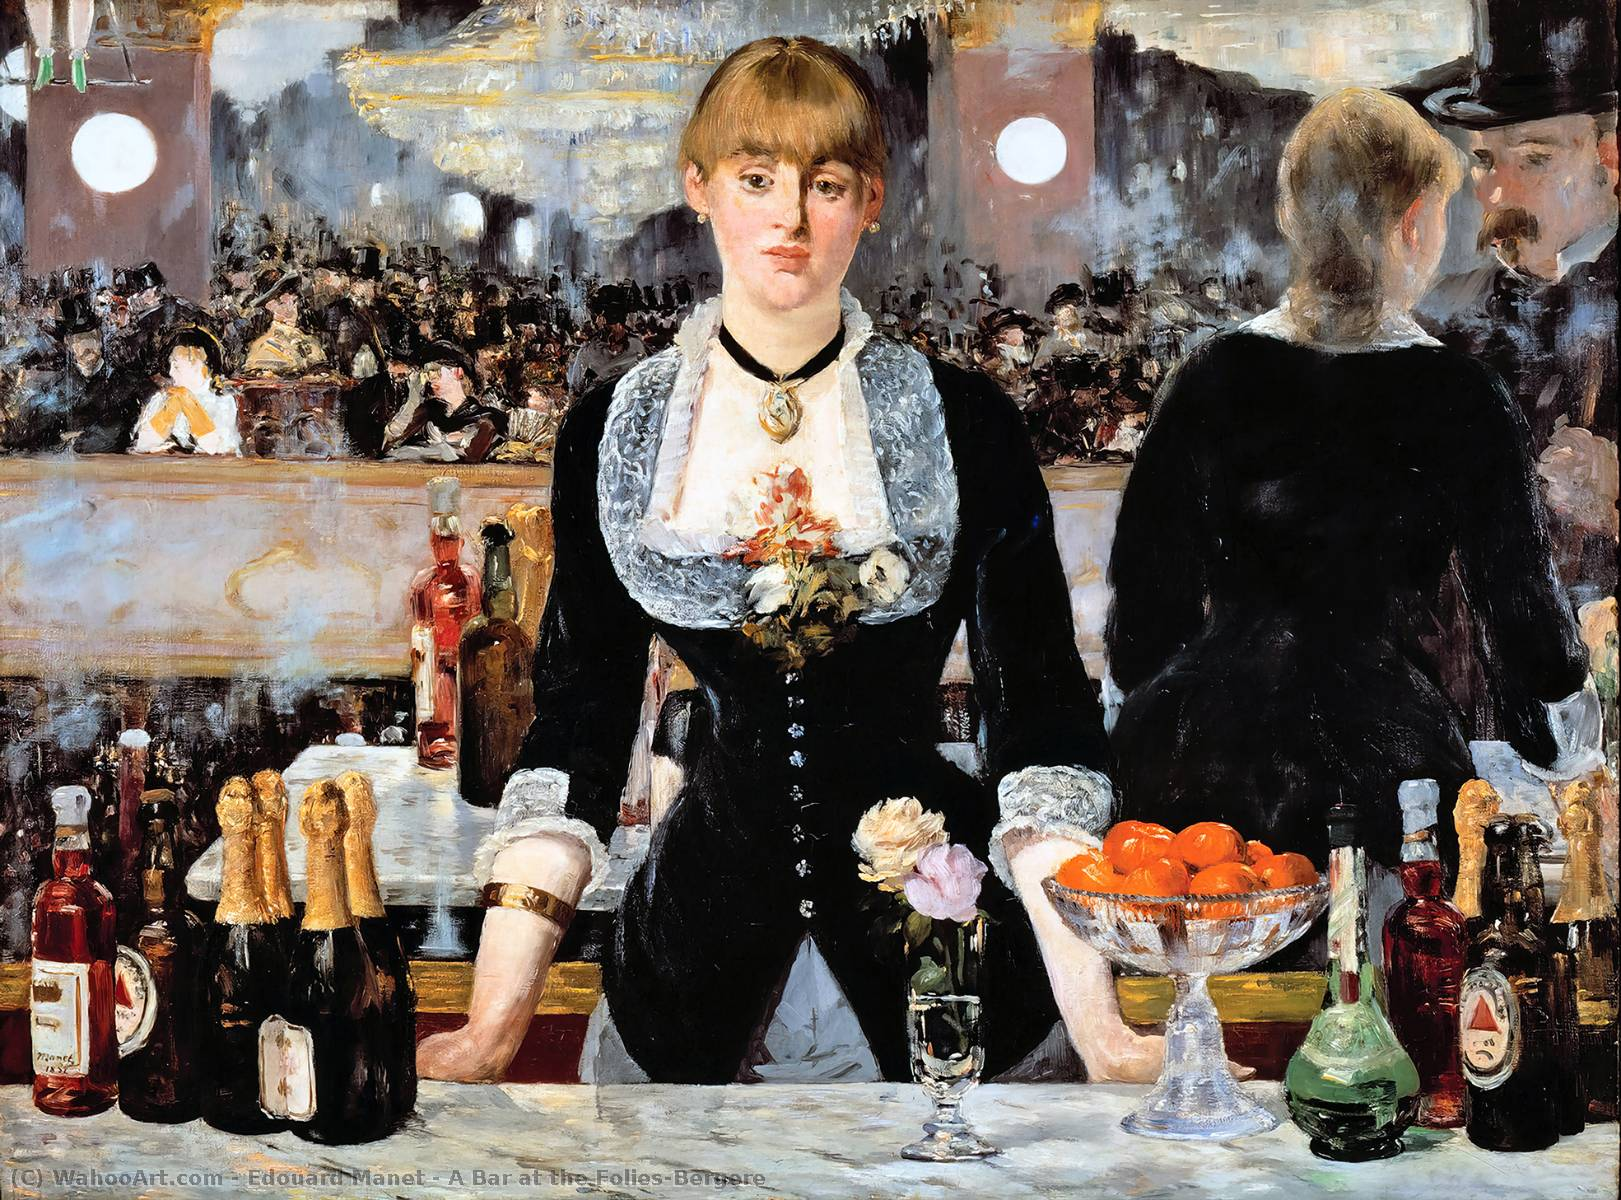 A Bar at the Folies-Bergere, 1882 by Edouard Manet (1832-1883, France) | Oil Painting | WahooArt.com